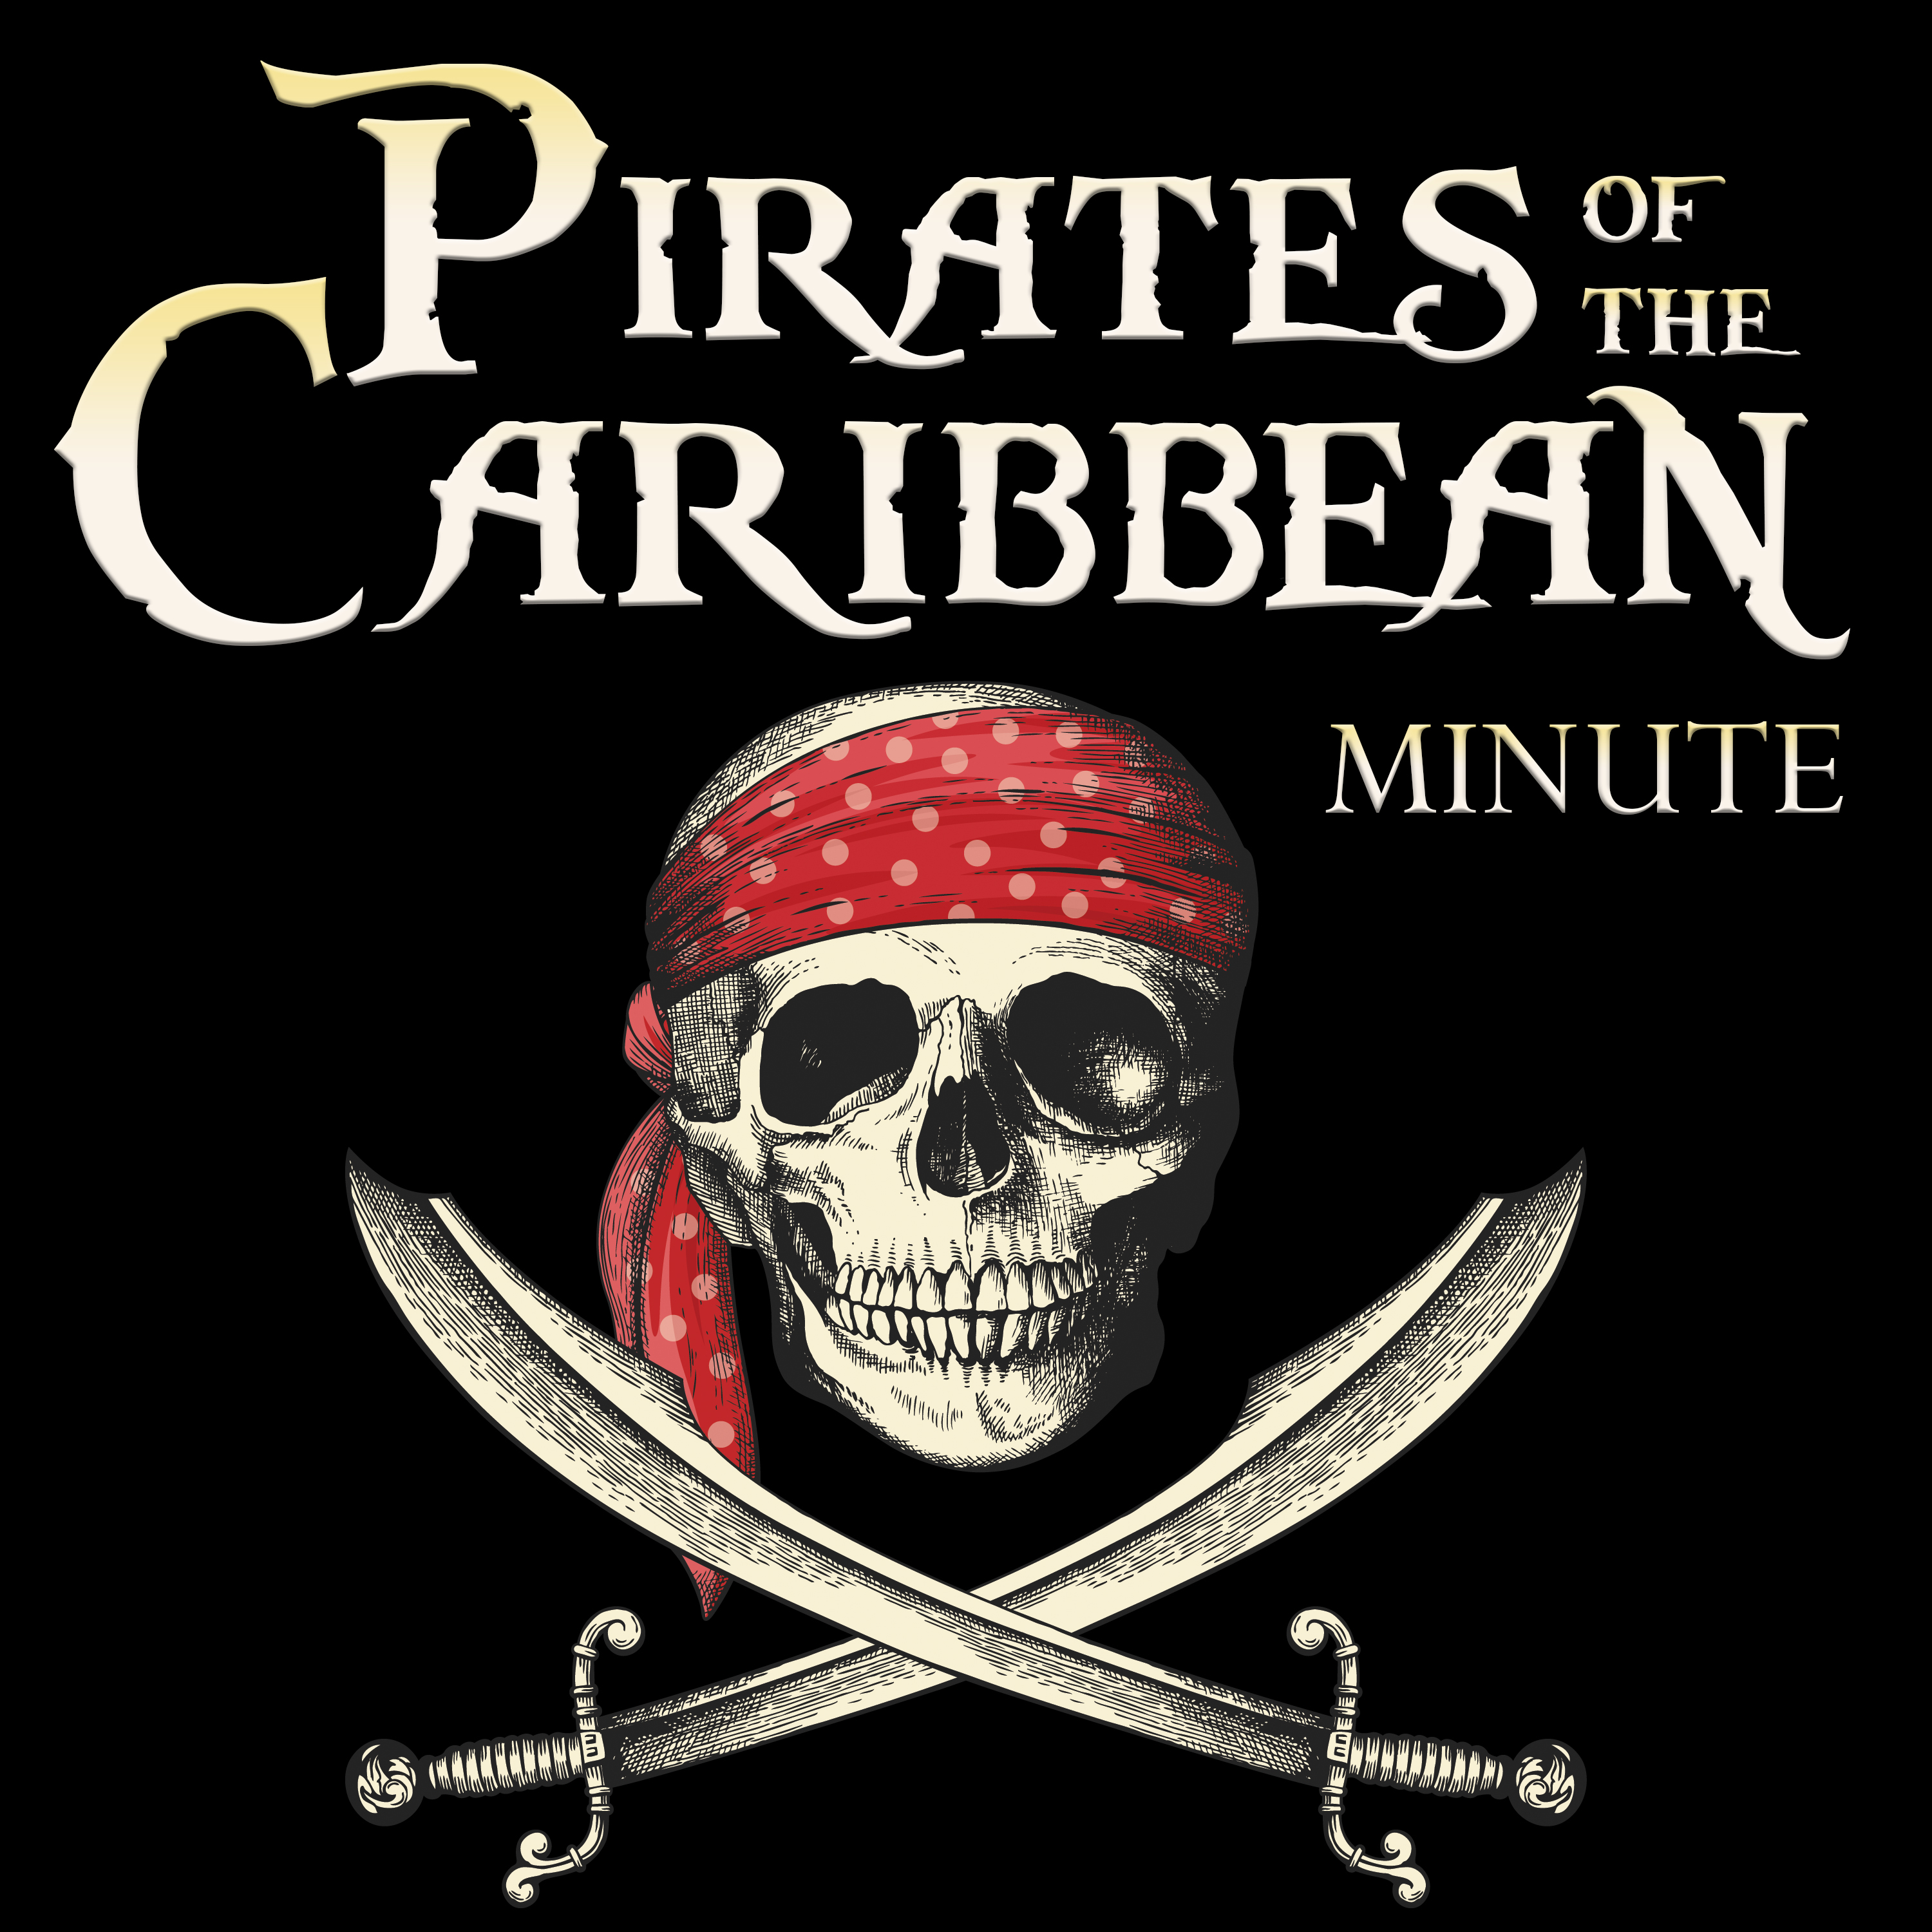 Pirates of the Caribbean Minute